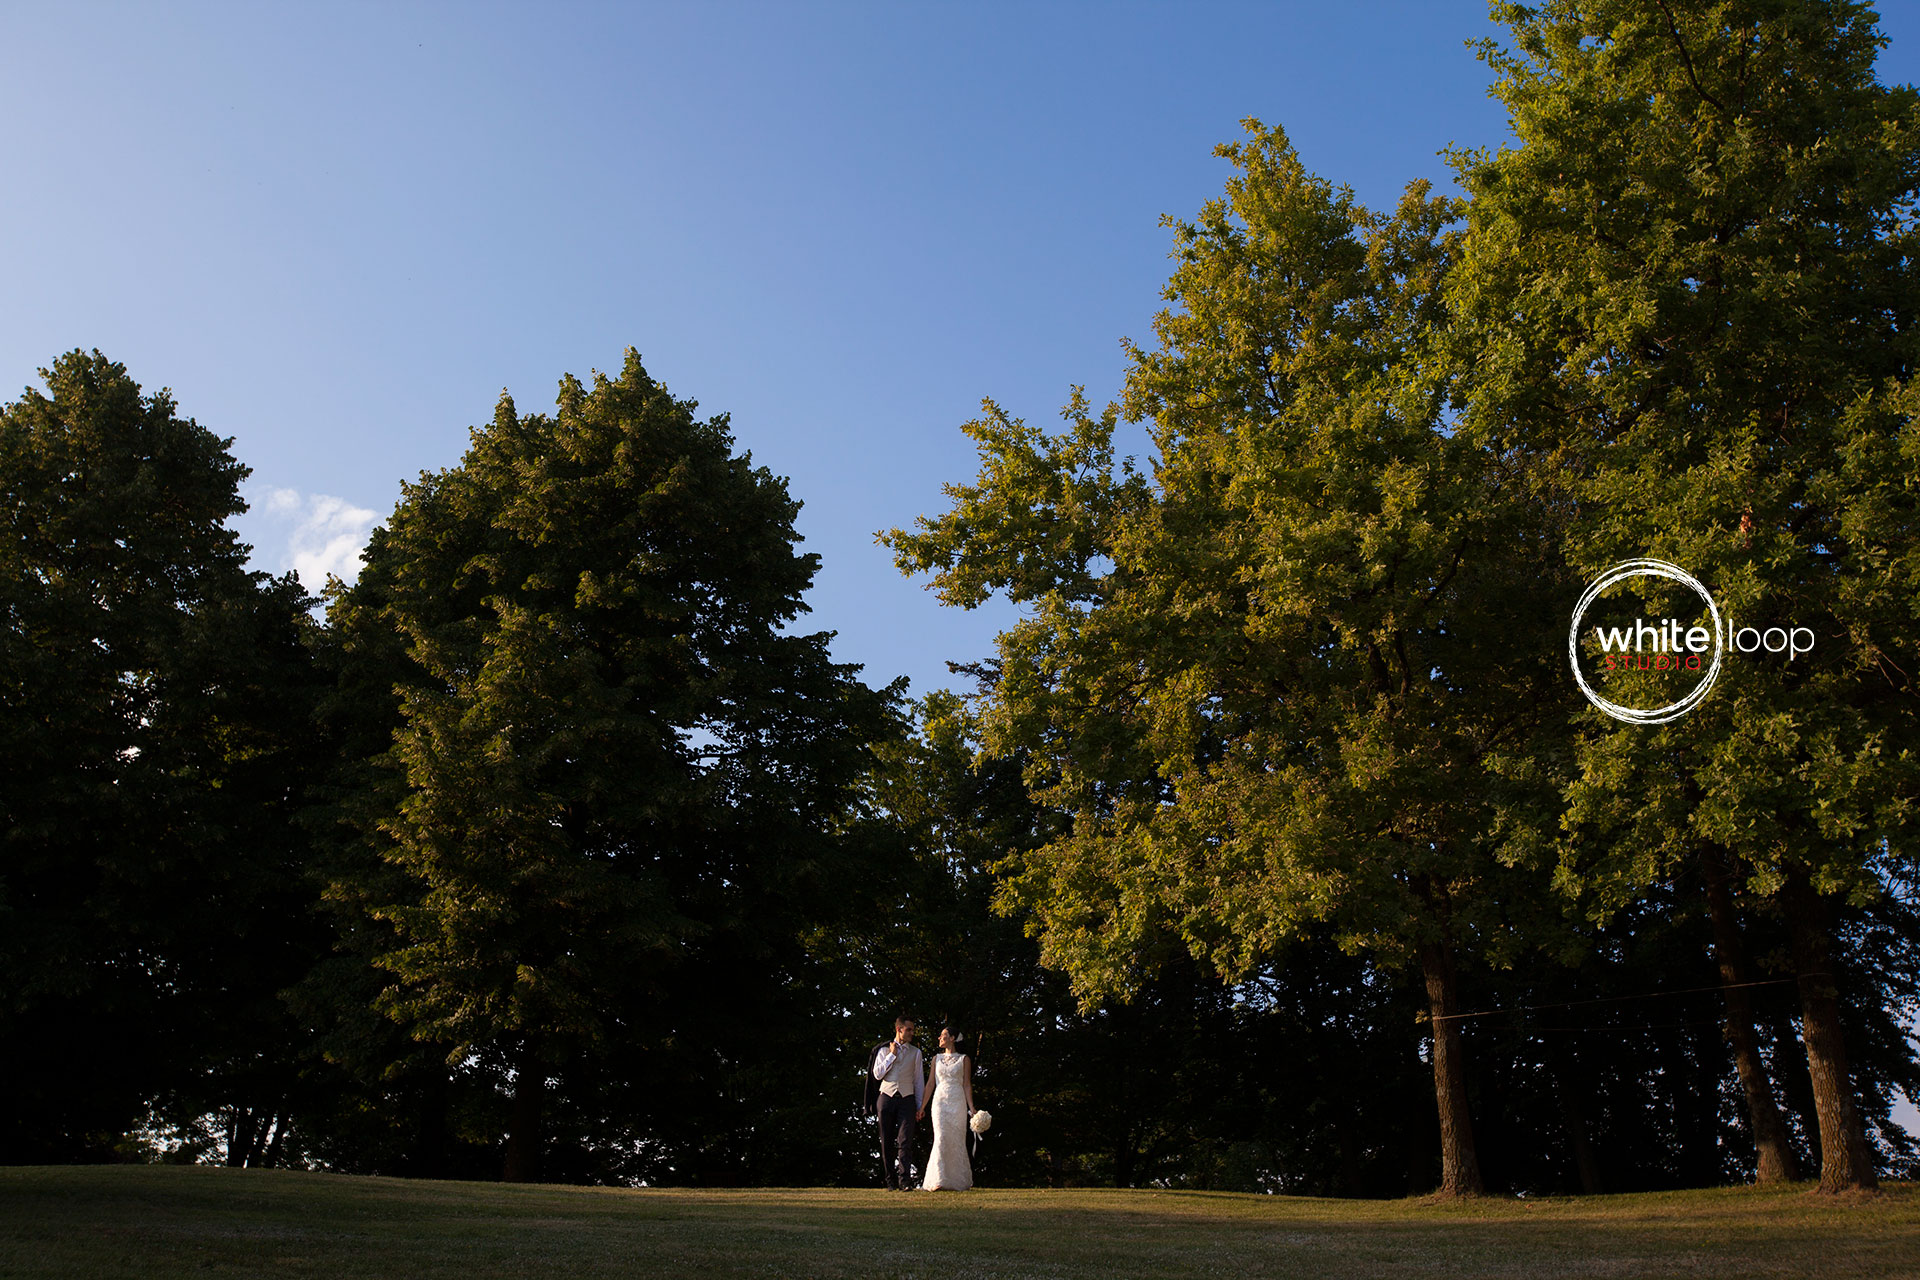 The bride and groom are holding their hands and looking each other in the middle of a Northern Italy wood